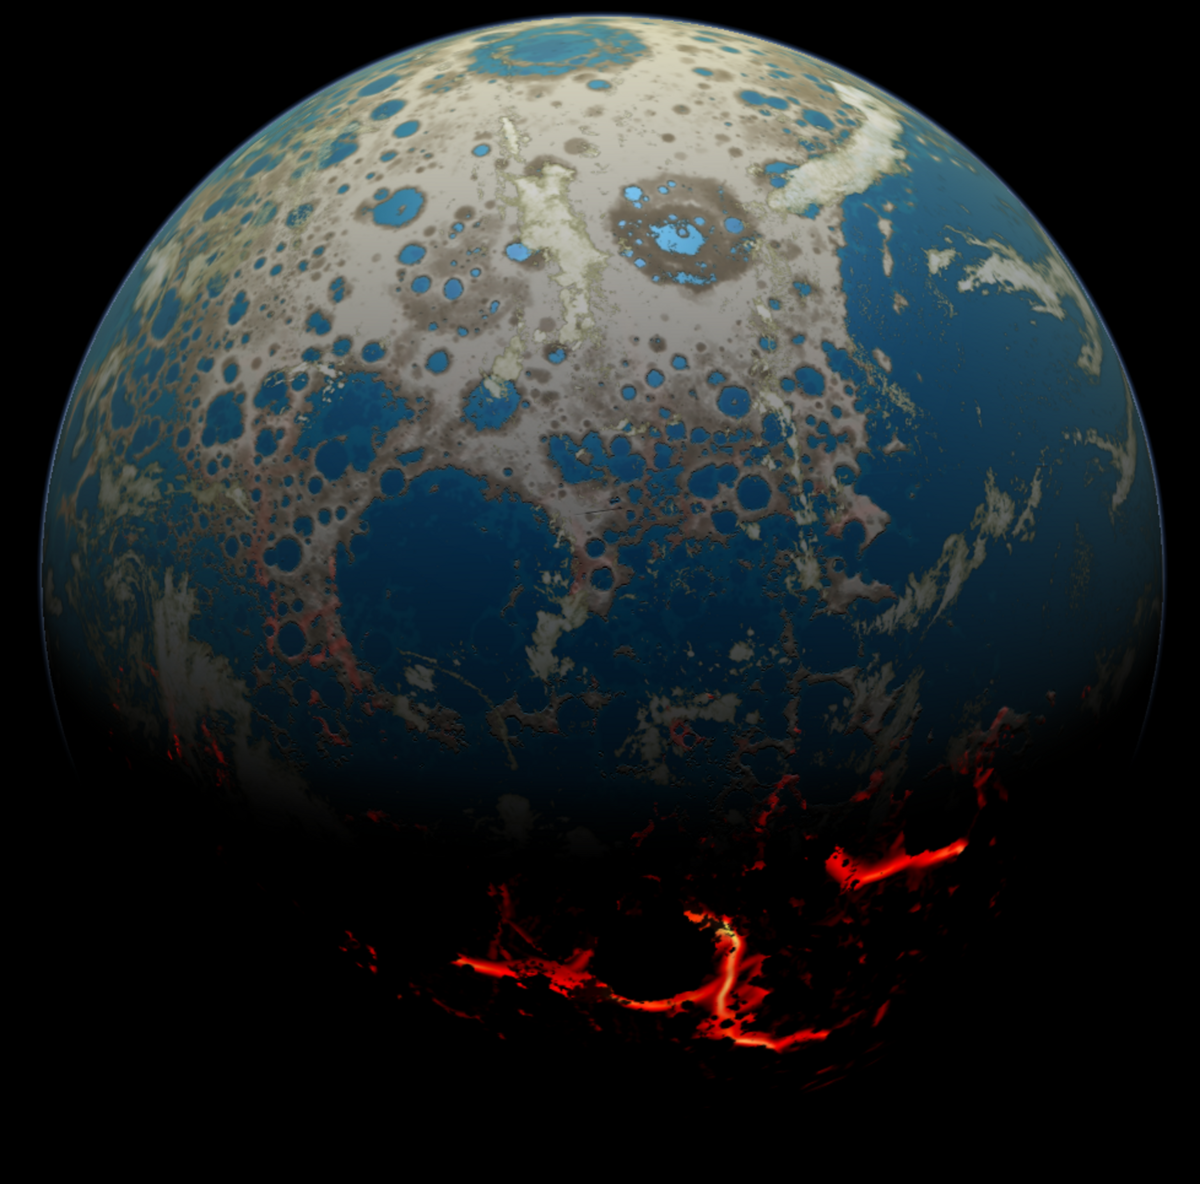 This illustration shows how the early Earth might have looked under bombardment